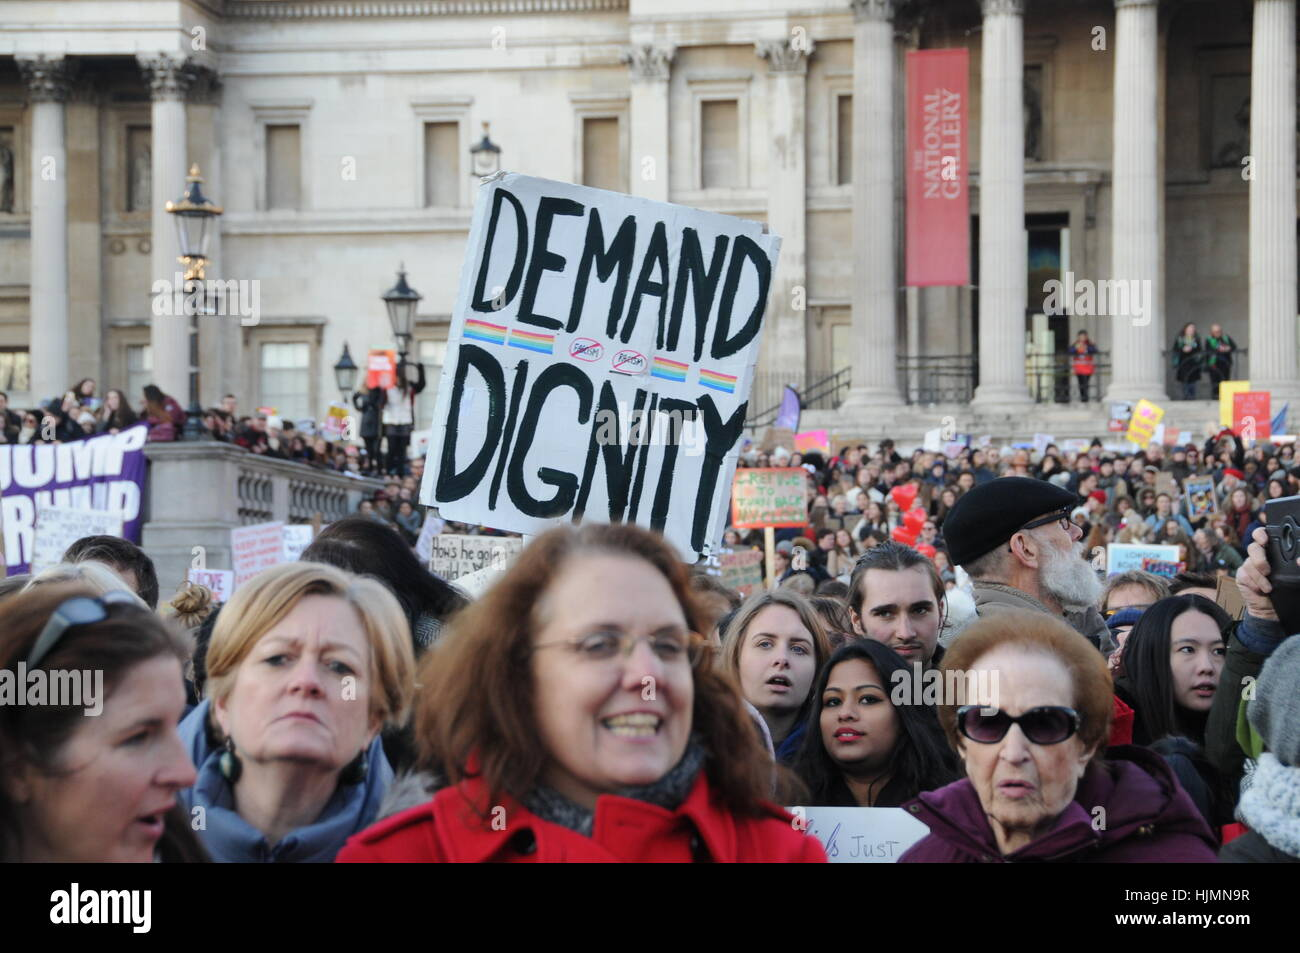 Protesters from the 2017 Women's March, against US President, Donald Trump, in London's Trafalgar Square. Stock Photo